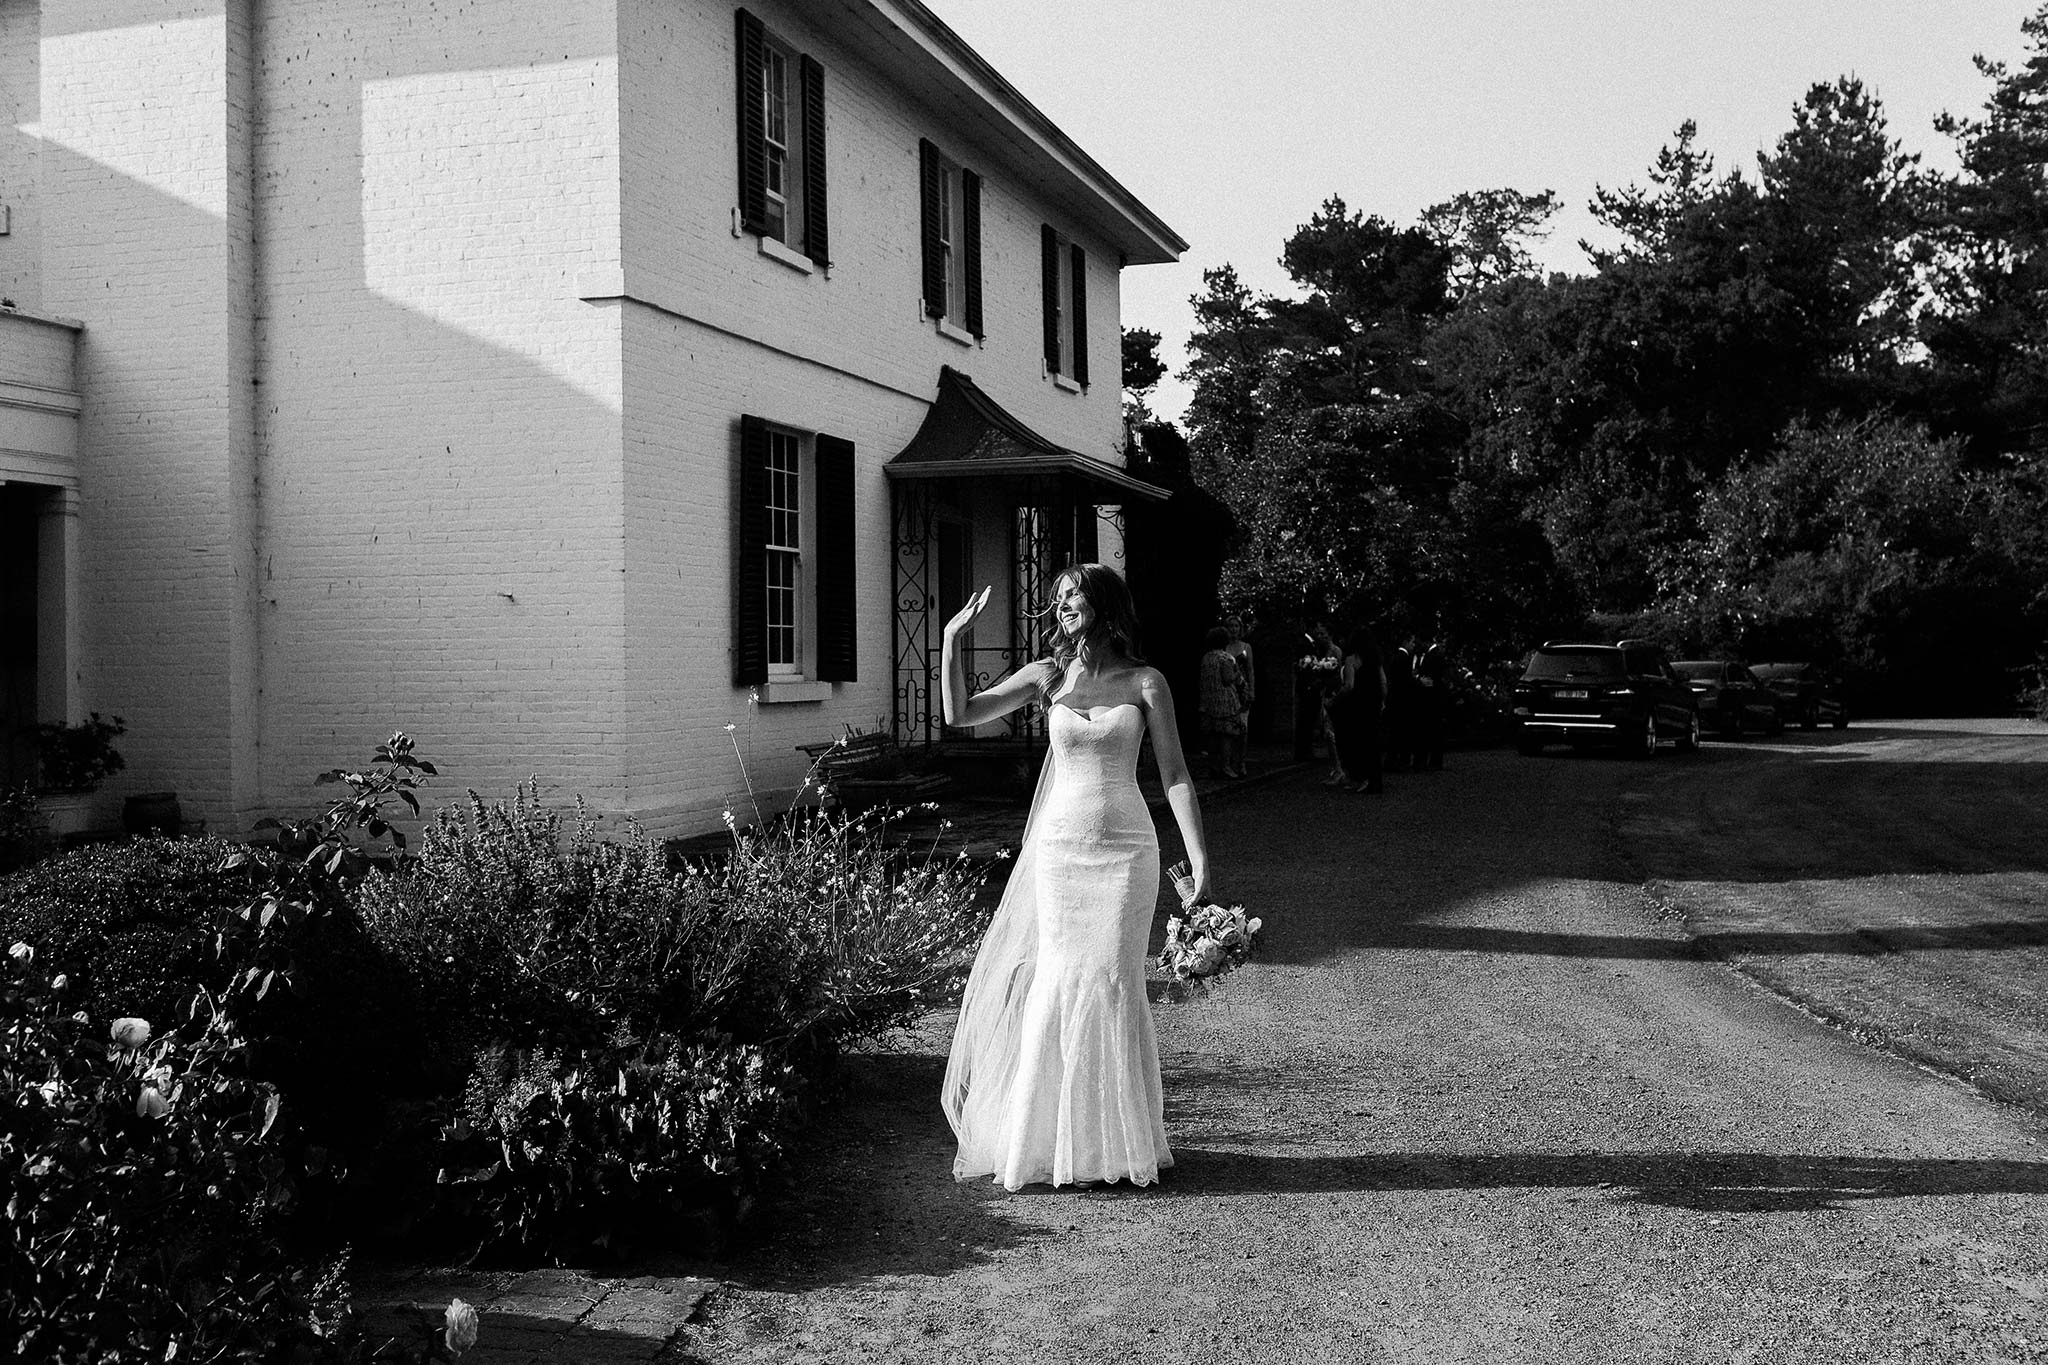 Launceston-Brickendon-Wedding-Photographer-bride-leaving